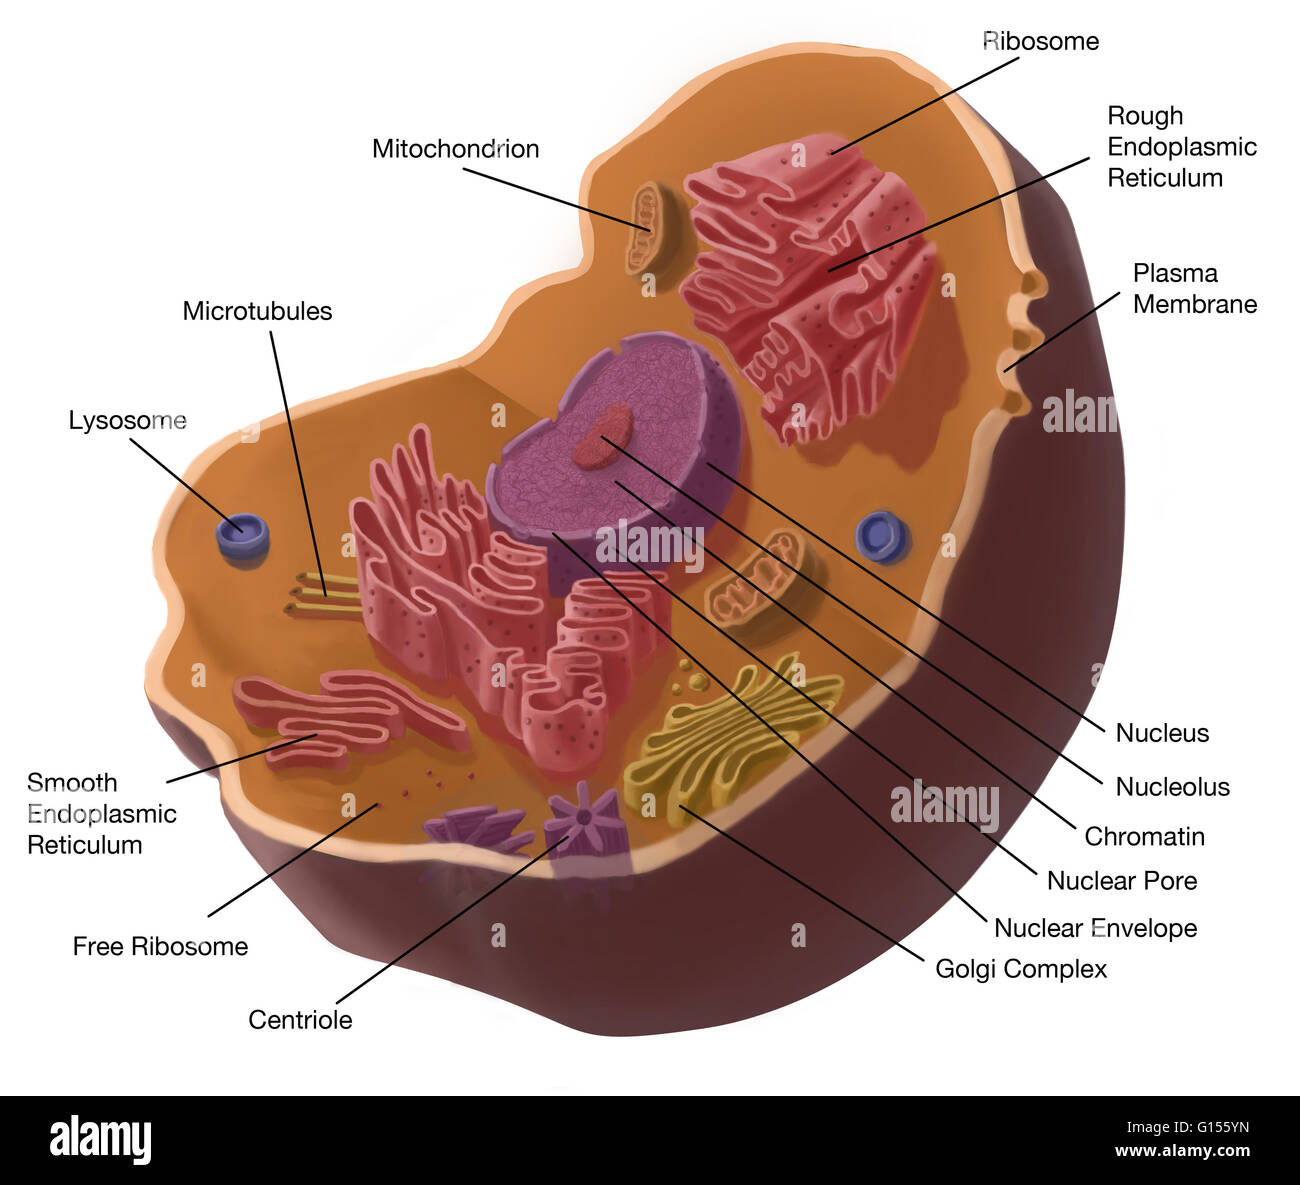 Illustration of animal cell  The cell has a nucleus in its center     Illustration of animal cell  The cell has a nucleus in its center  that  contains chromatin constituted of DNA  and nucleole  composed of RNA and  proteins